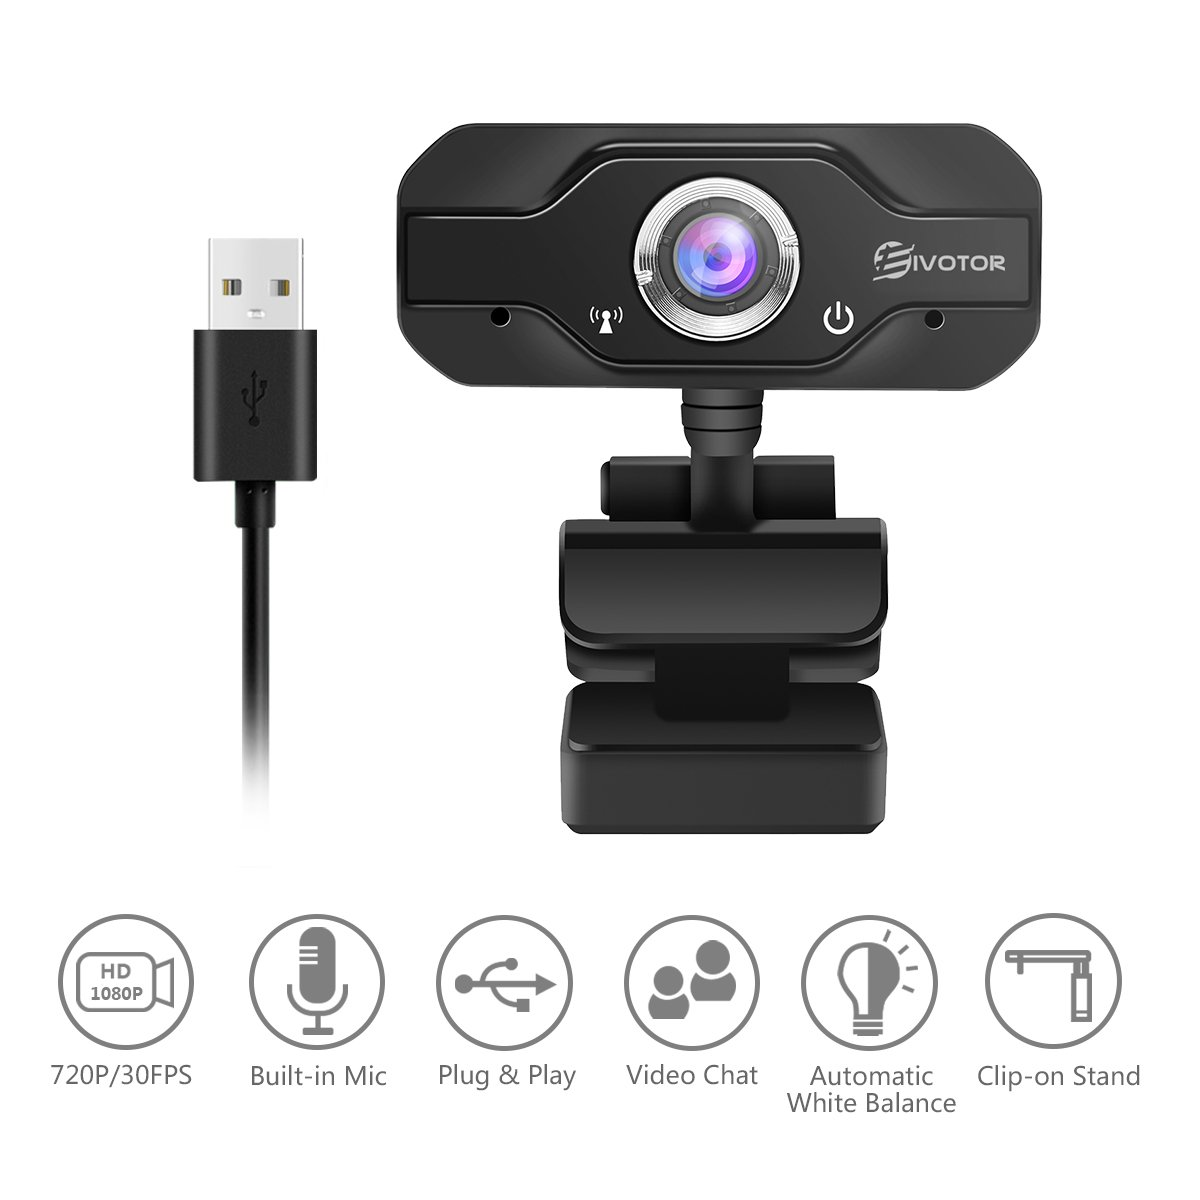 720P HD Webcam, EIVOTOR USB Mini Computer Camera with Built-in Microphone for Laptops and Desktop,Black by EIVOTOR (Image #3)